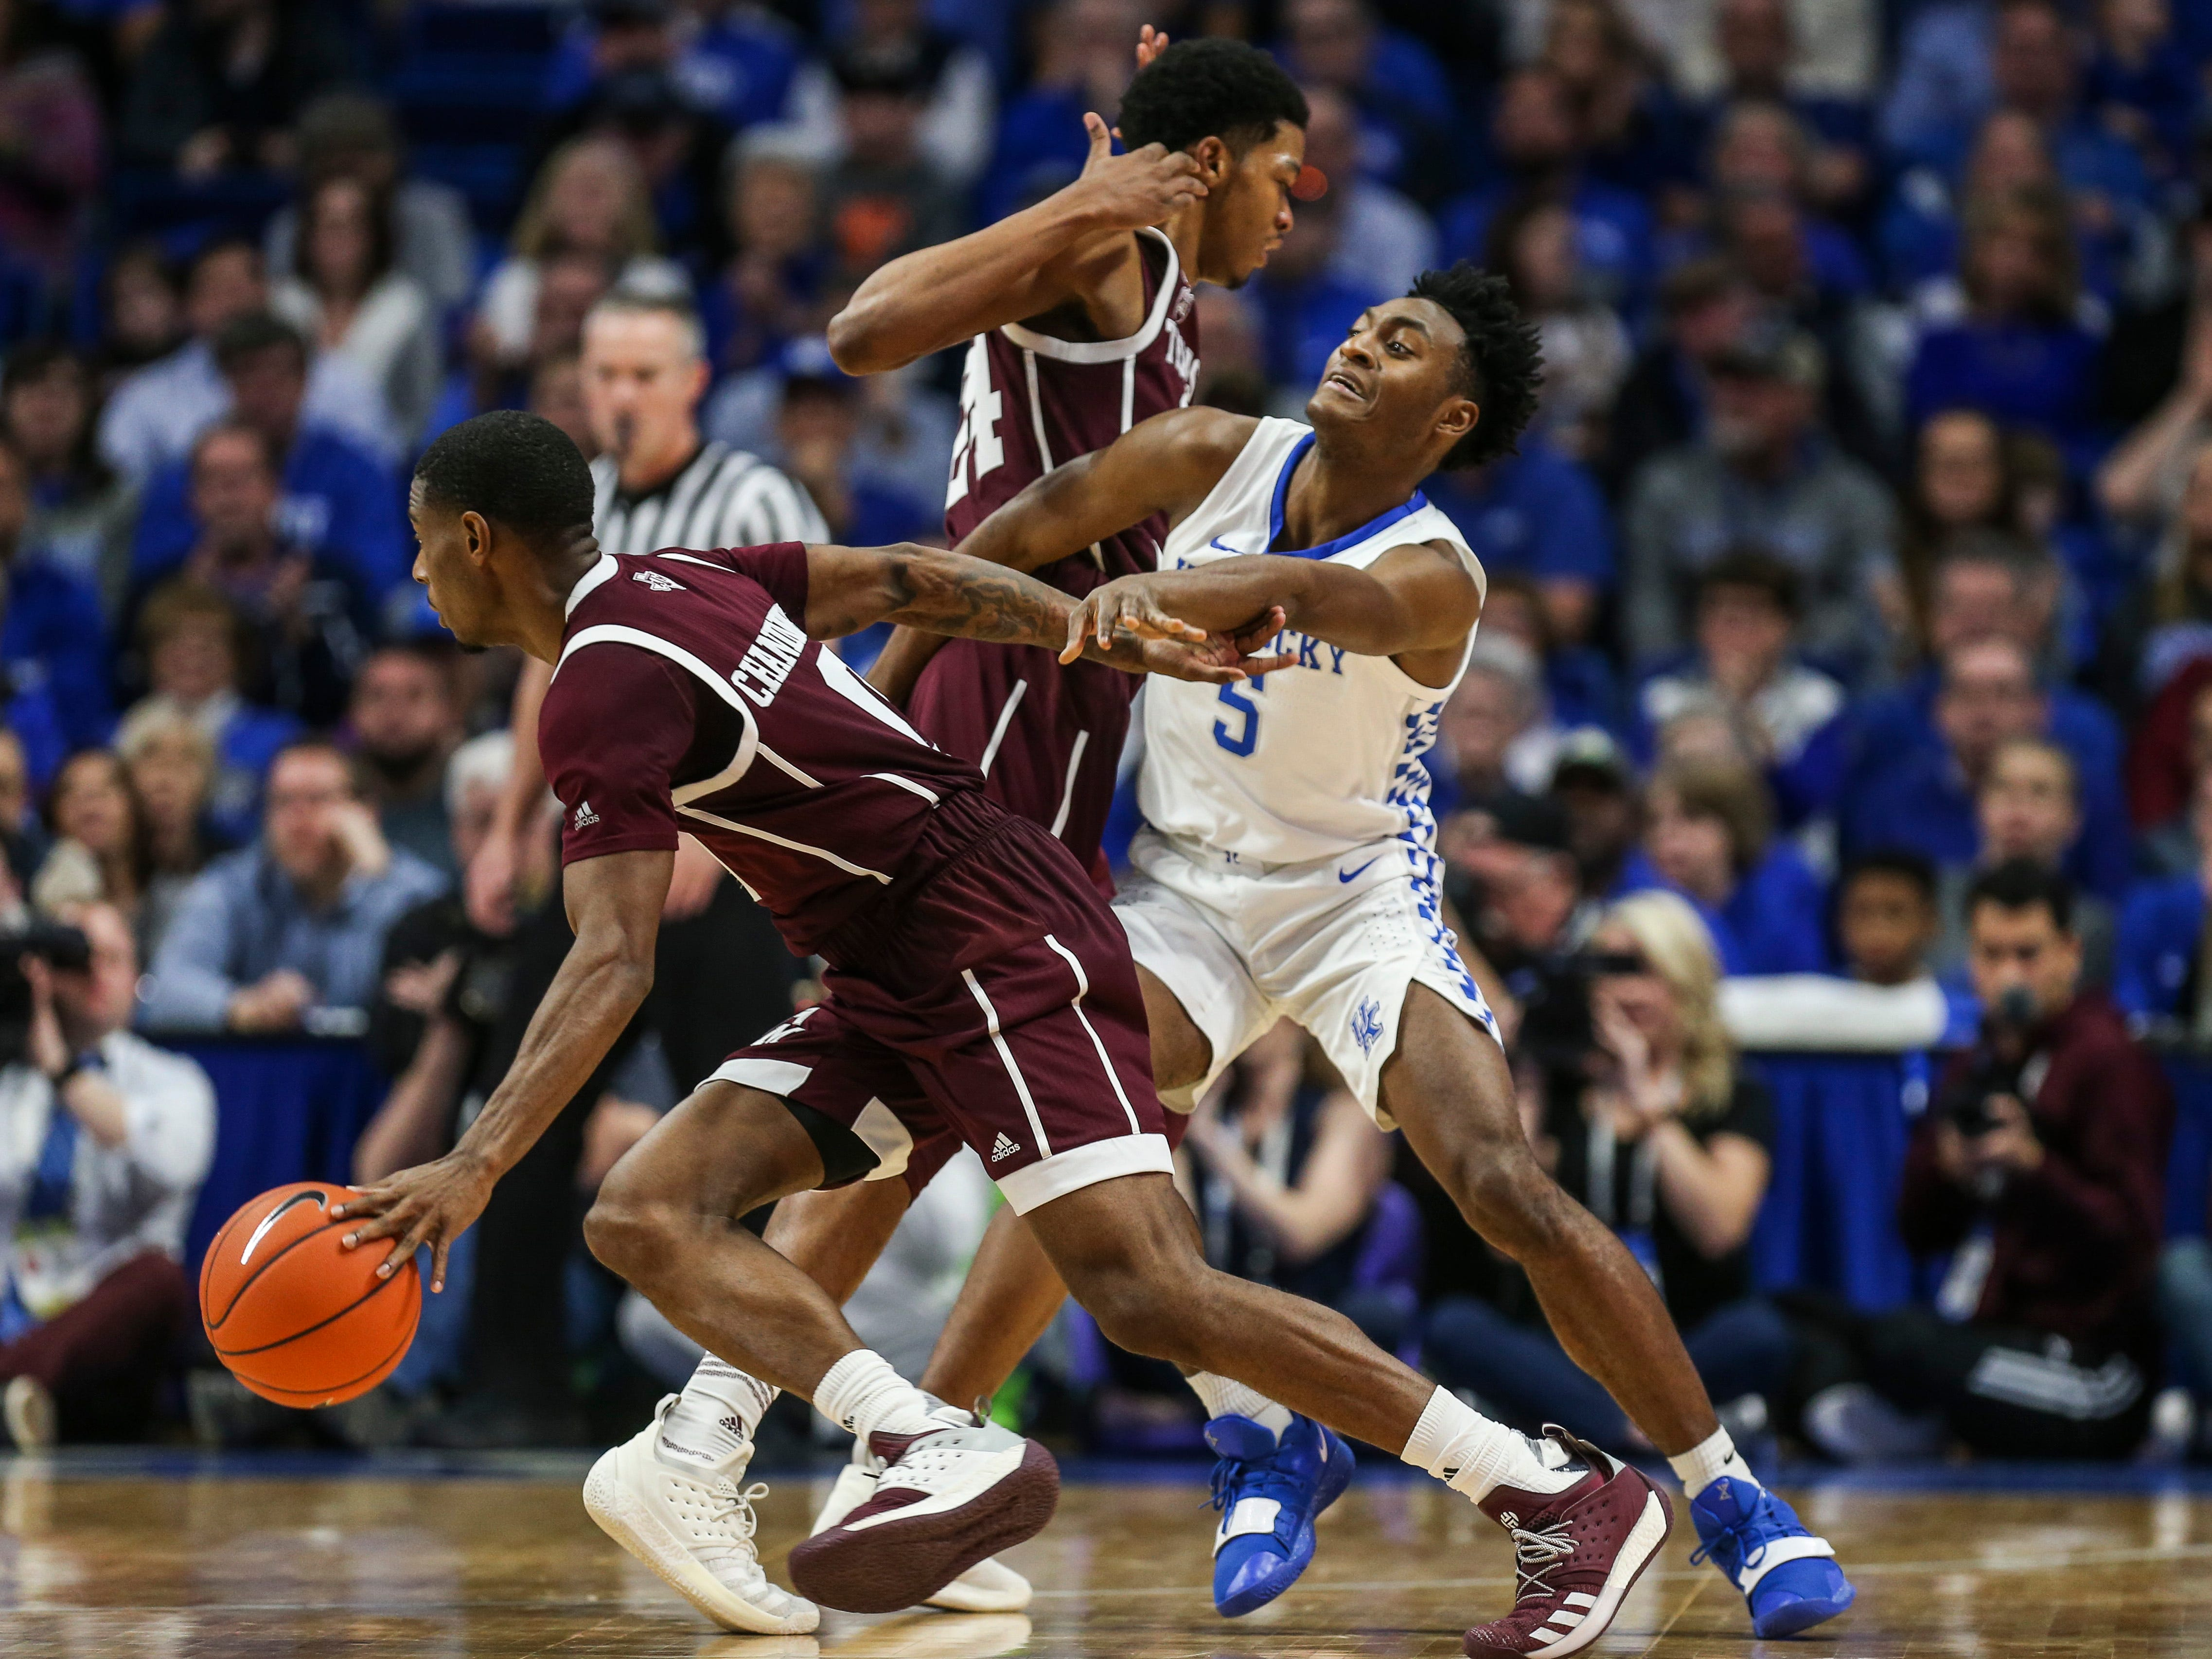 Kentucky's Immanuel Quickly gets screened by the Texas A&M offense while guarding Wendell Mitchell Jan. 8, 2019. Quickly finished with 10 points and three steals in the Cats' 85-74 win.